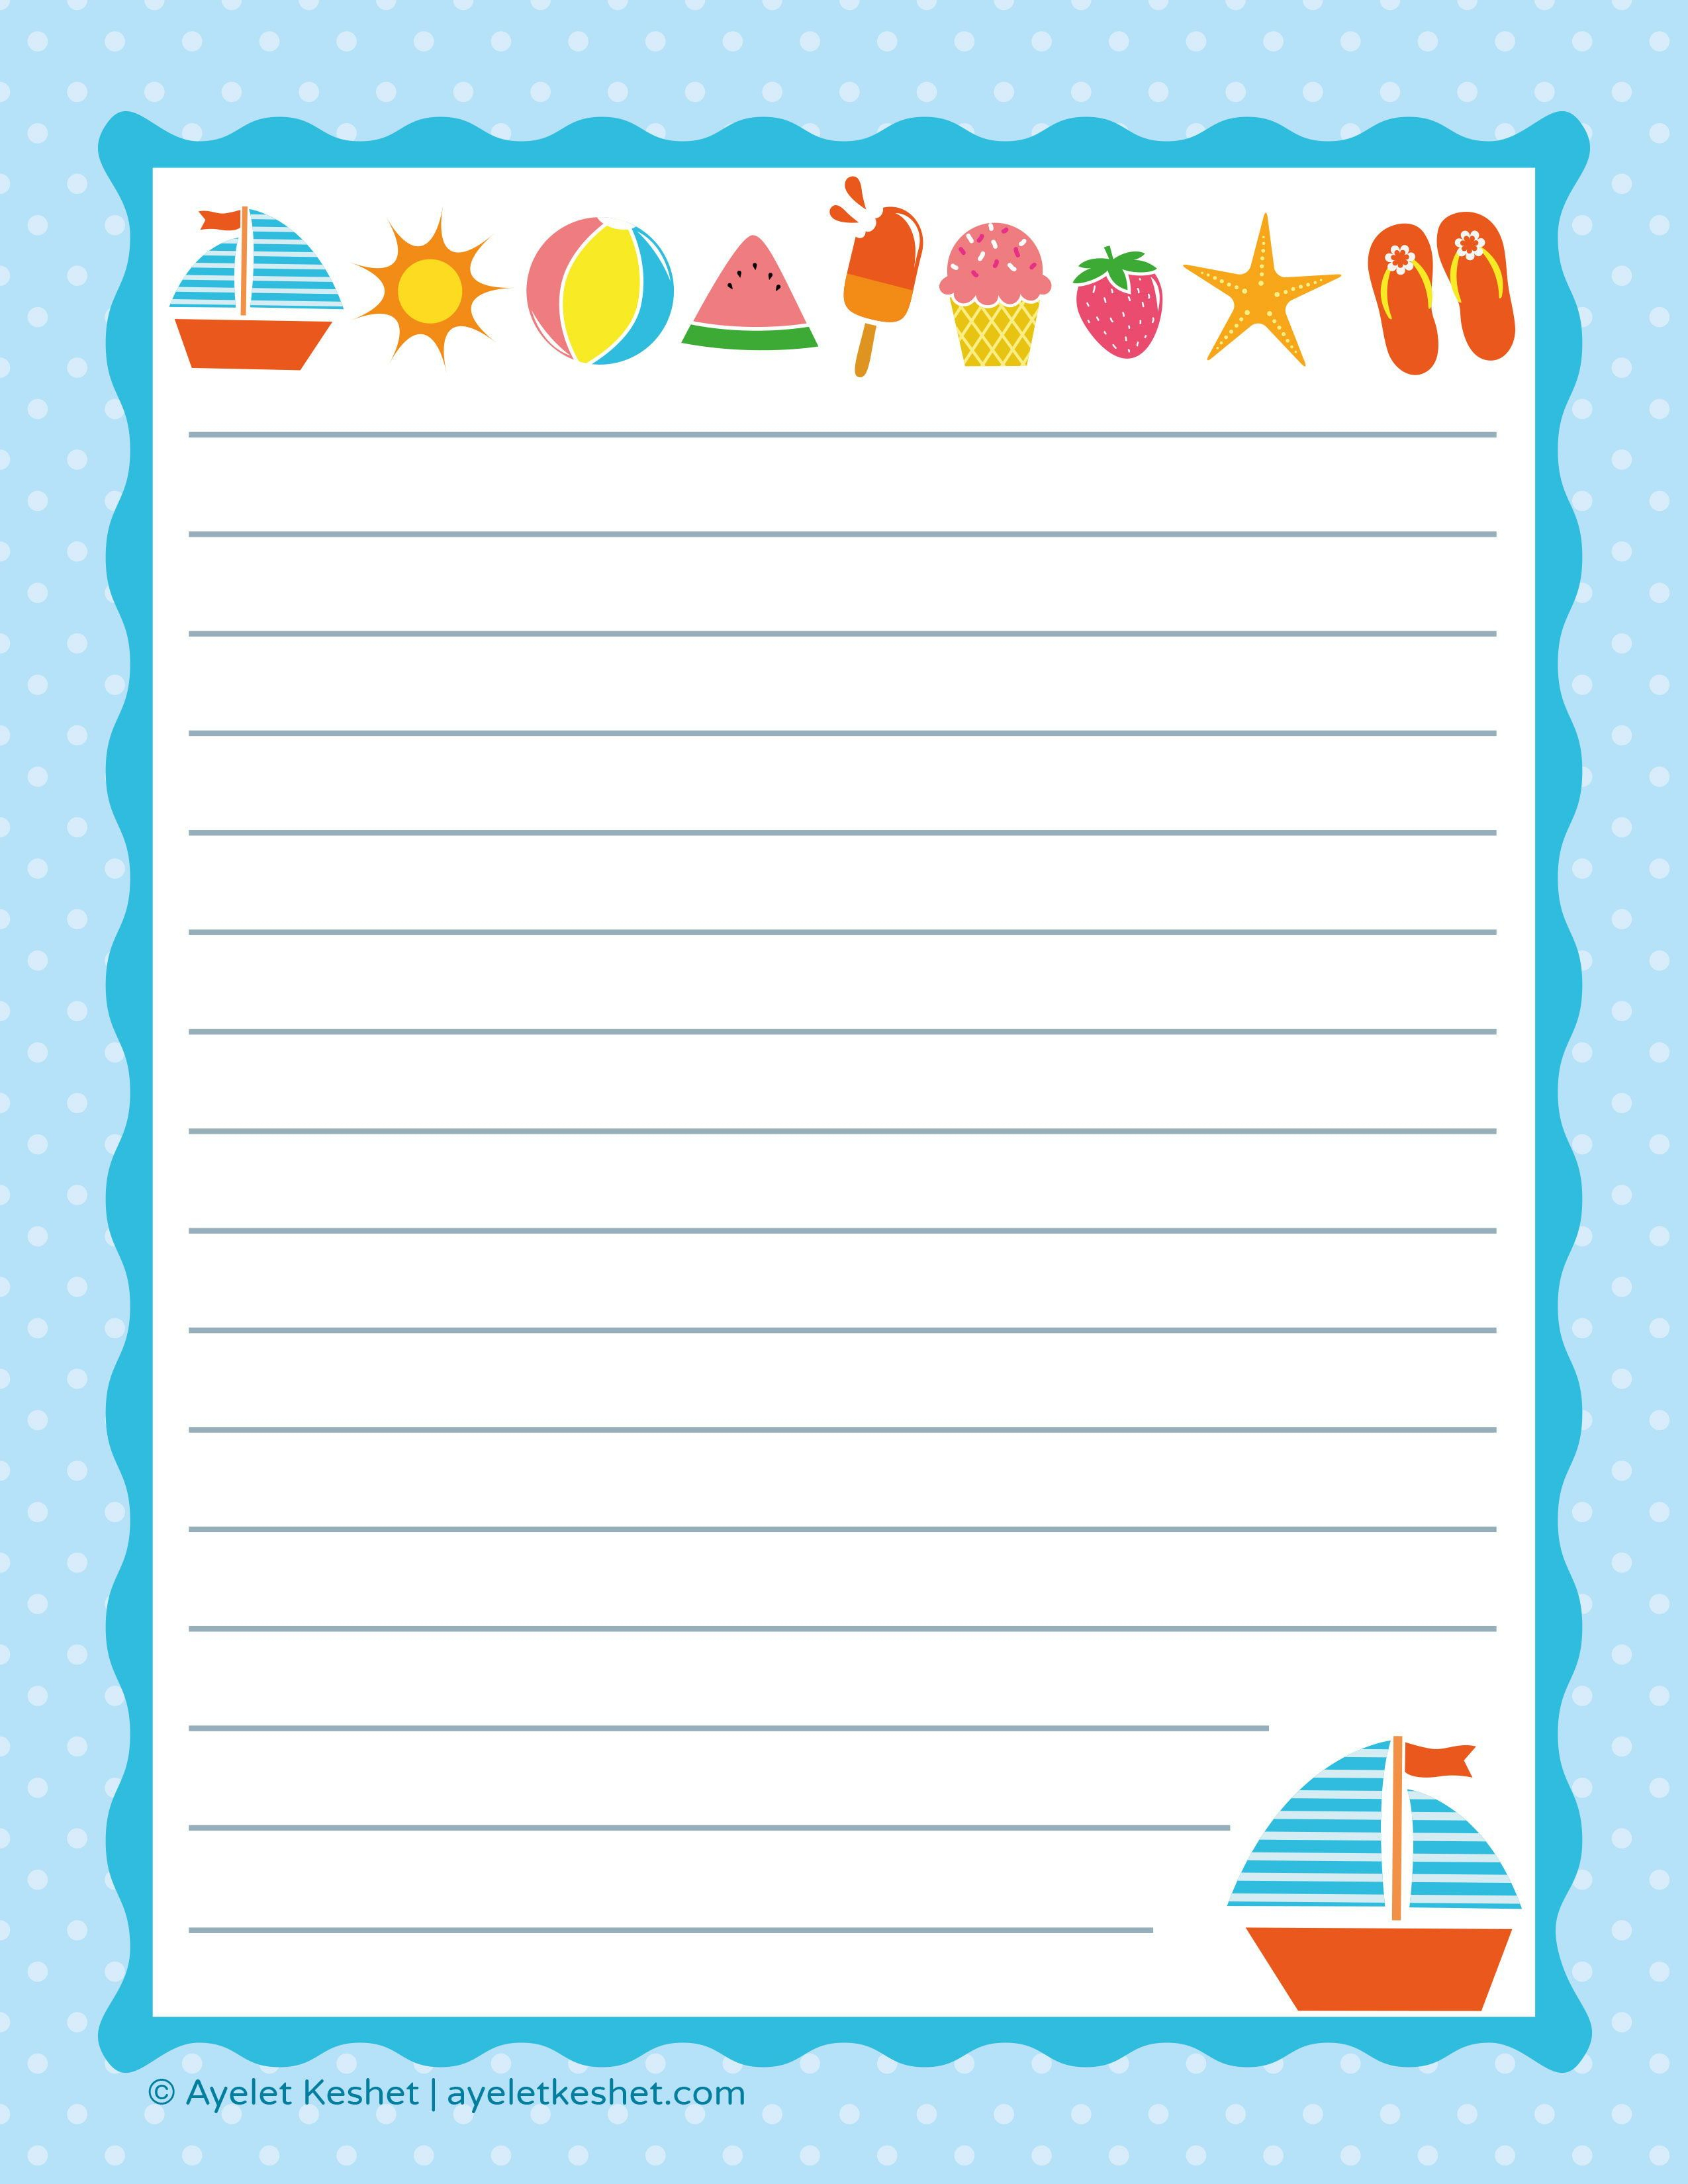 Free Printable Letter Paper | Printables To Go | Pinterest | Free - Free Printable Stationery Paper